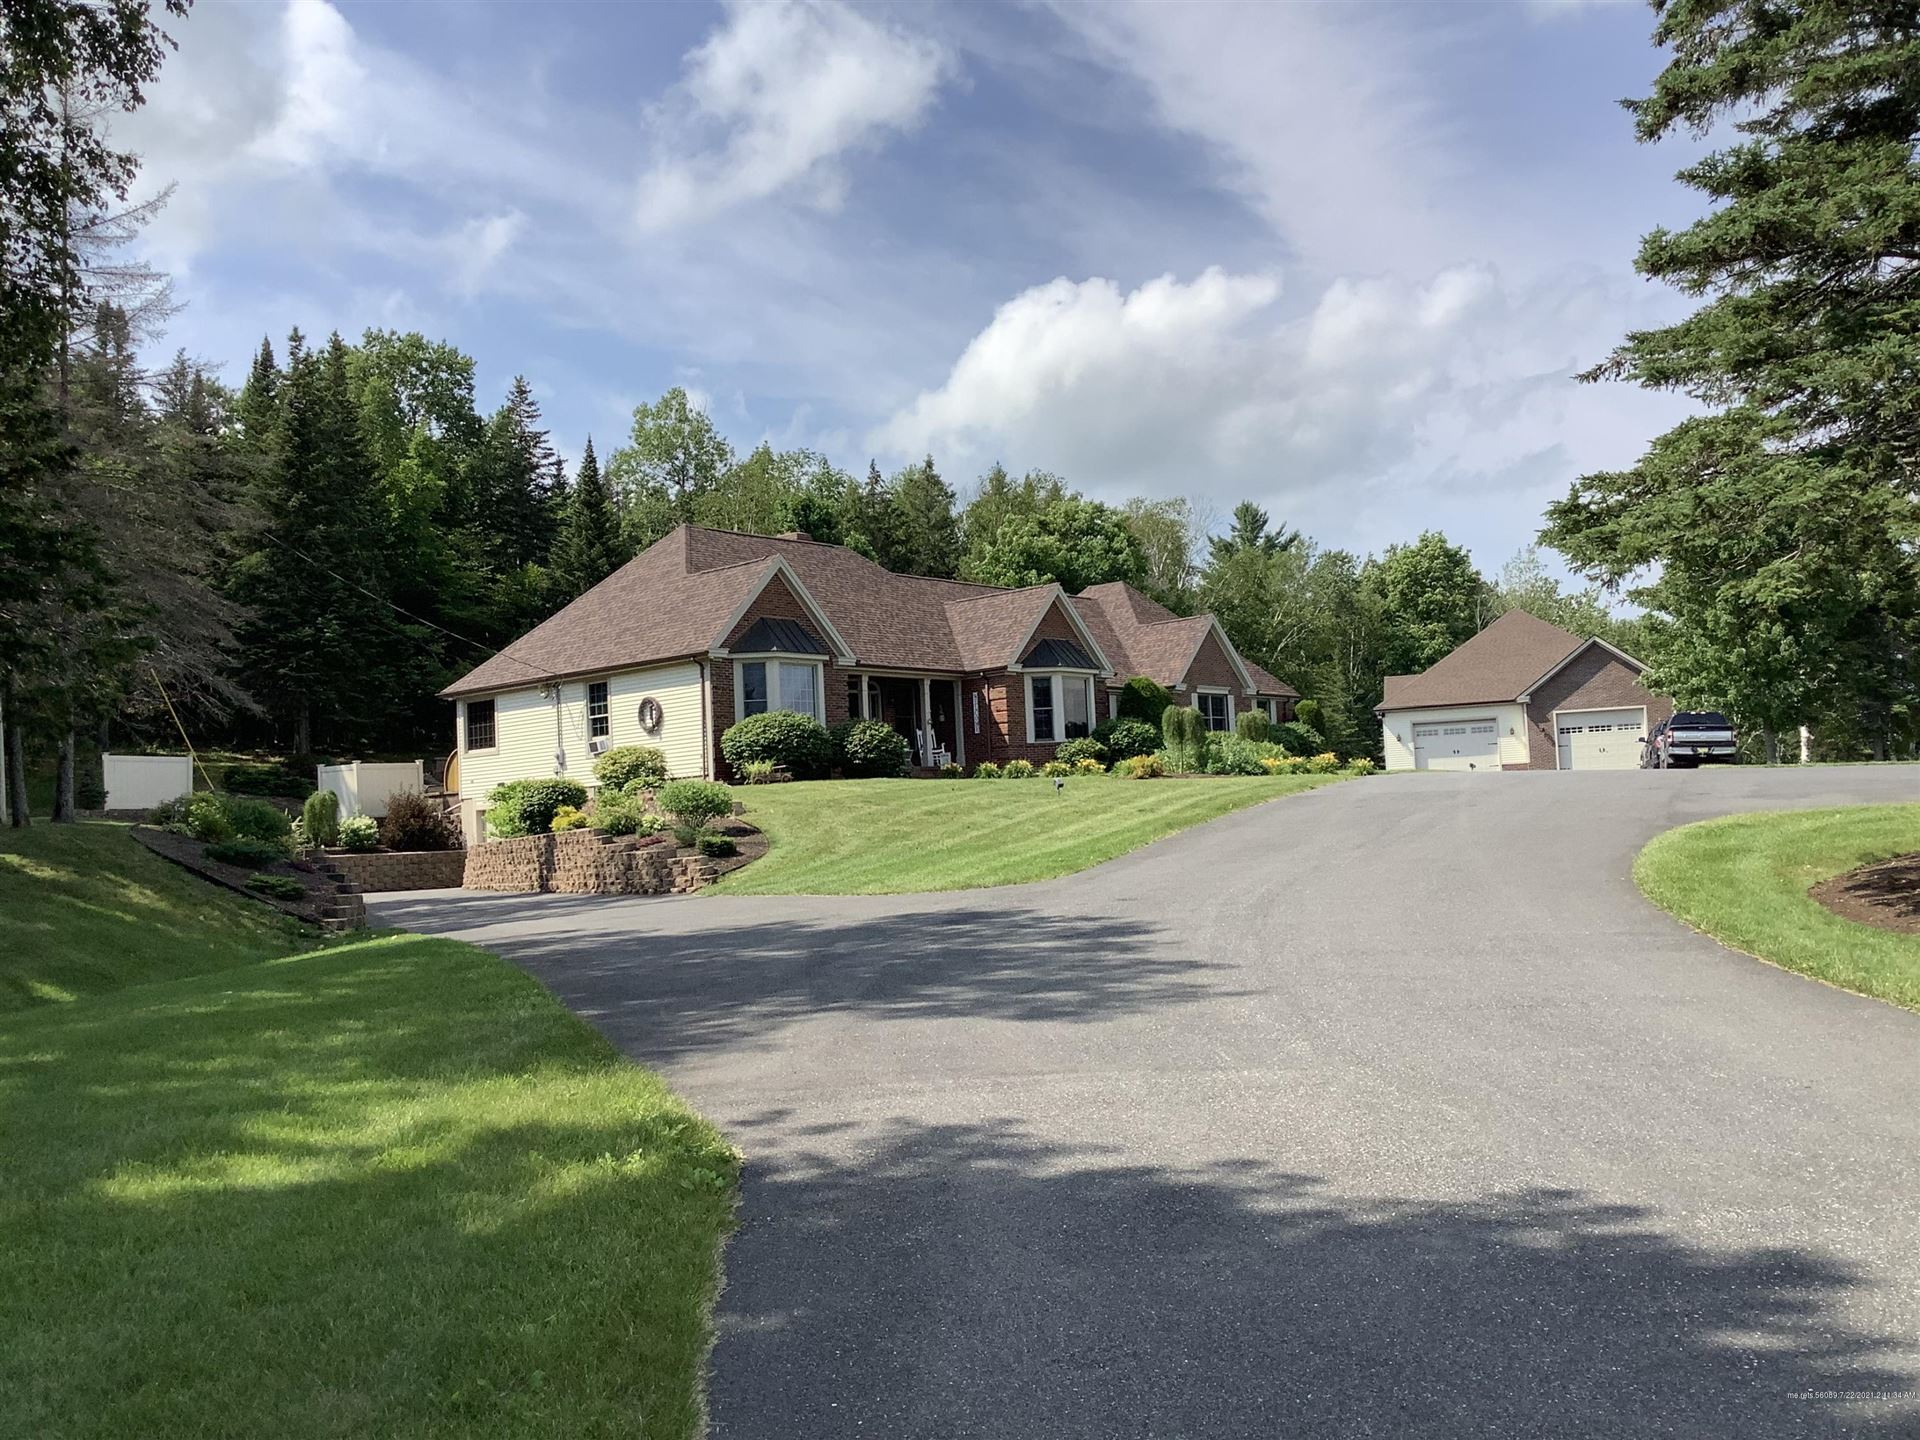 Photo of 138 Conant Road, Fort Fairfield, ME 04742 (MLS # 1501471)